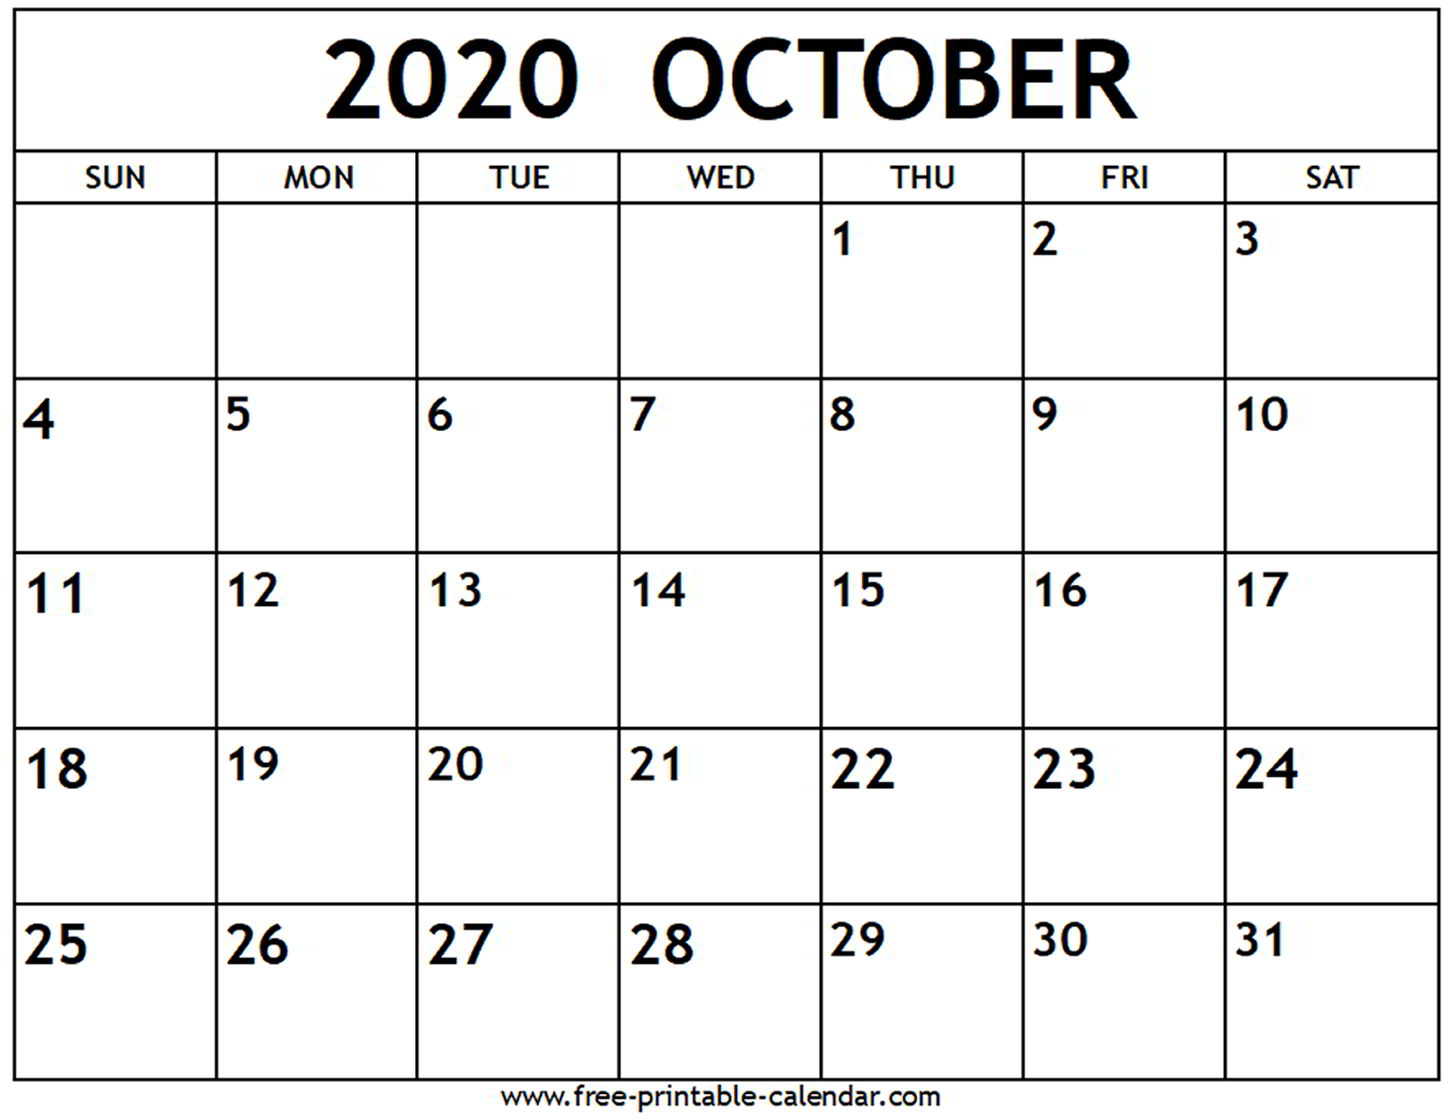 September October 2020 Calendar Printable - Wpa.wpart.co pertaining to Free Printable Monthly Calendar September 2020